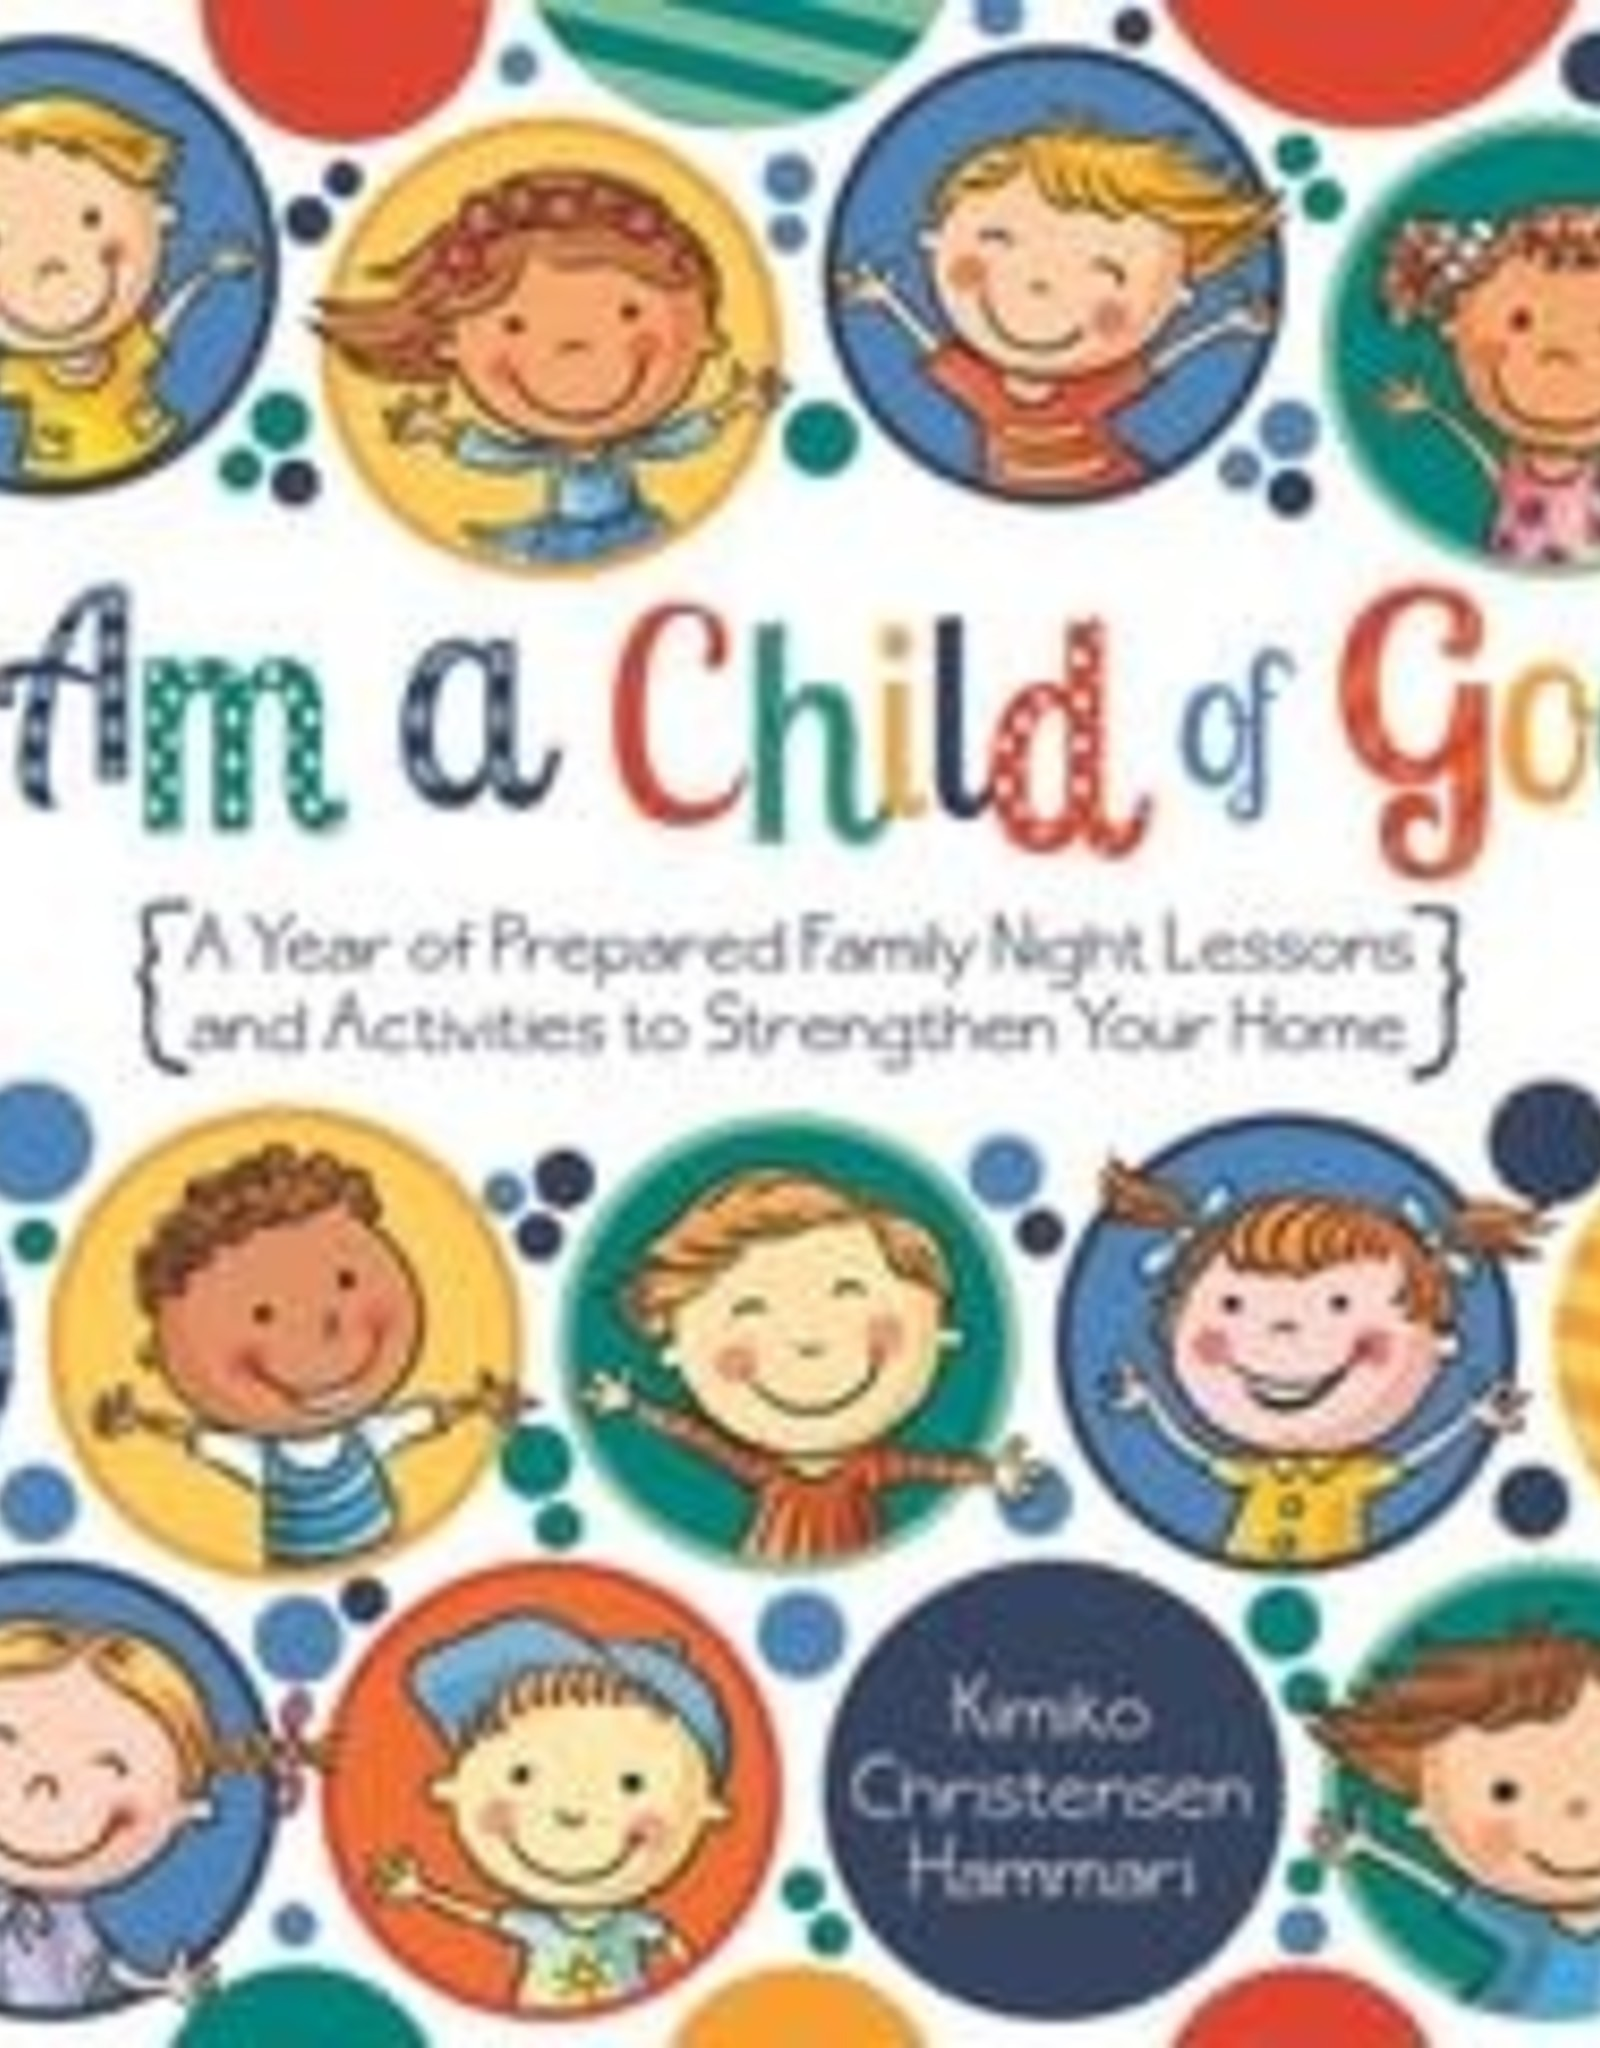 I AM A CHILD OF GOD - FHE LESSONS